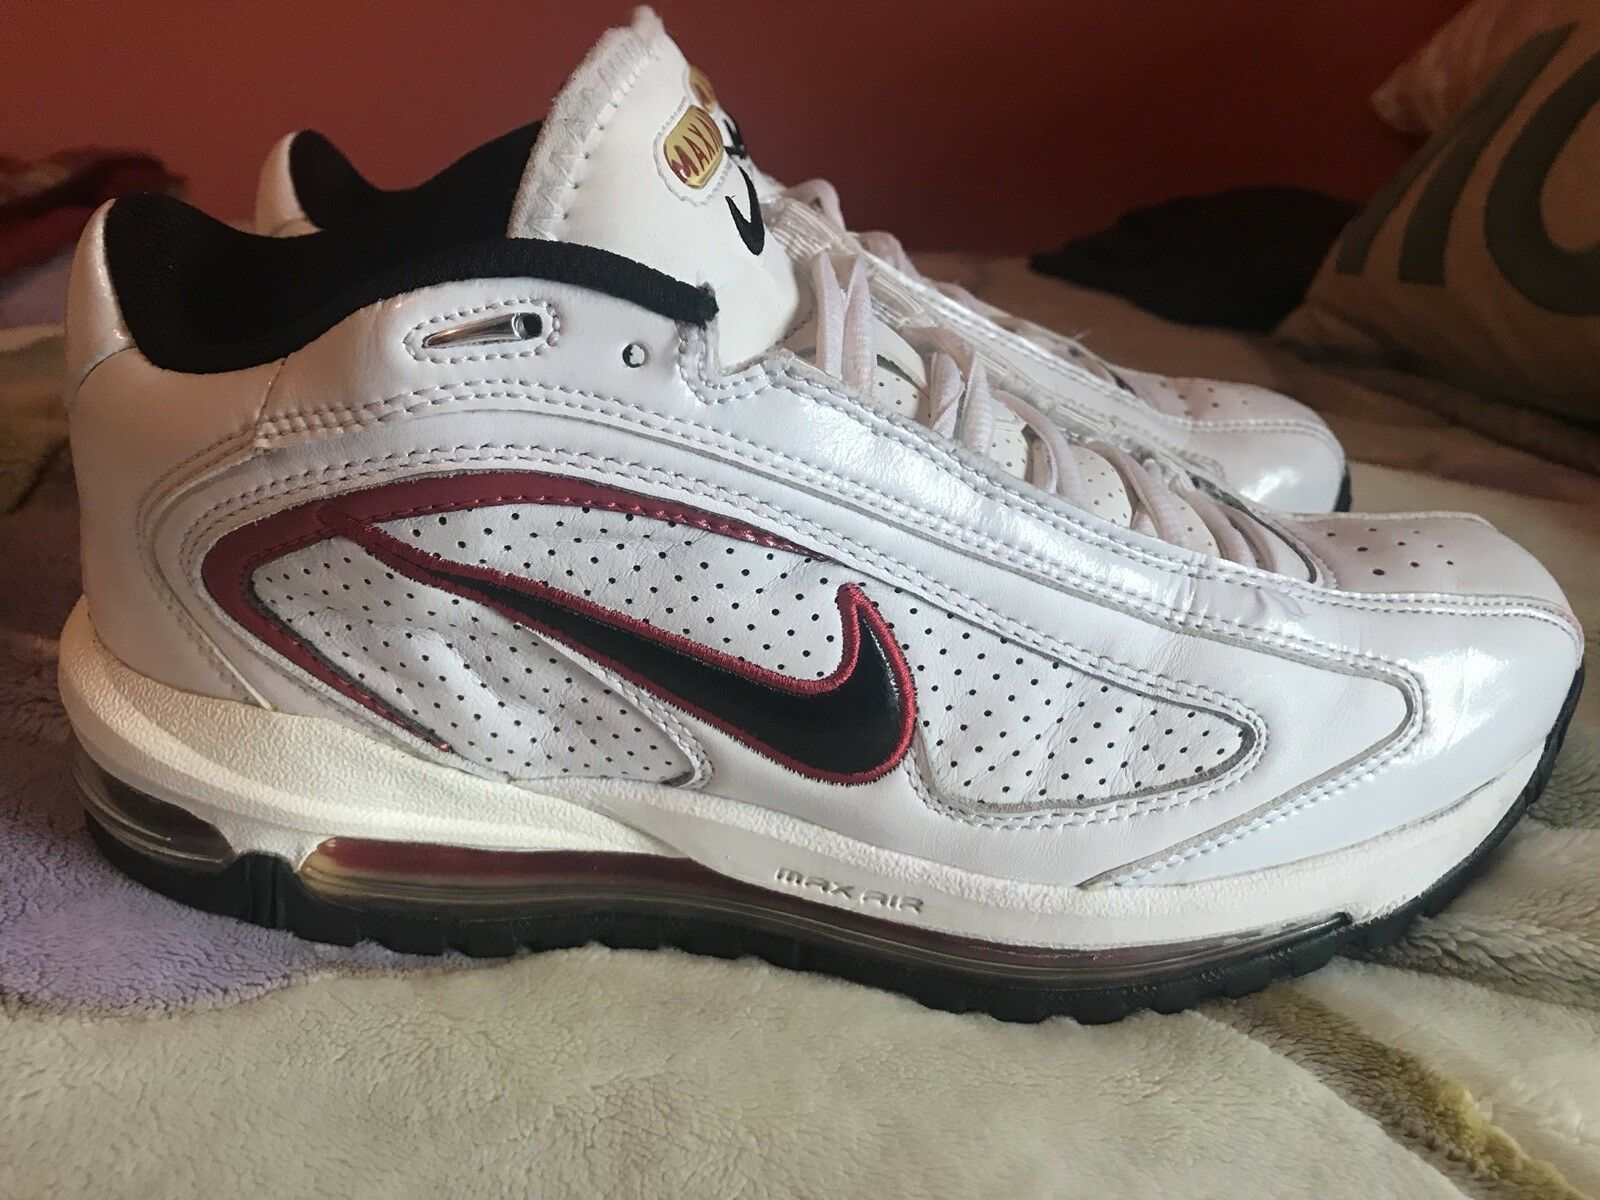 Nike Max Air White Red Cross Training size 8.5 New shoes for men and women, limited time discount